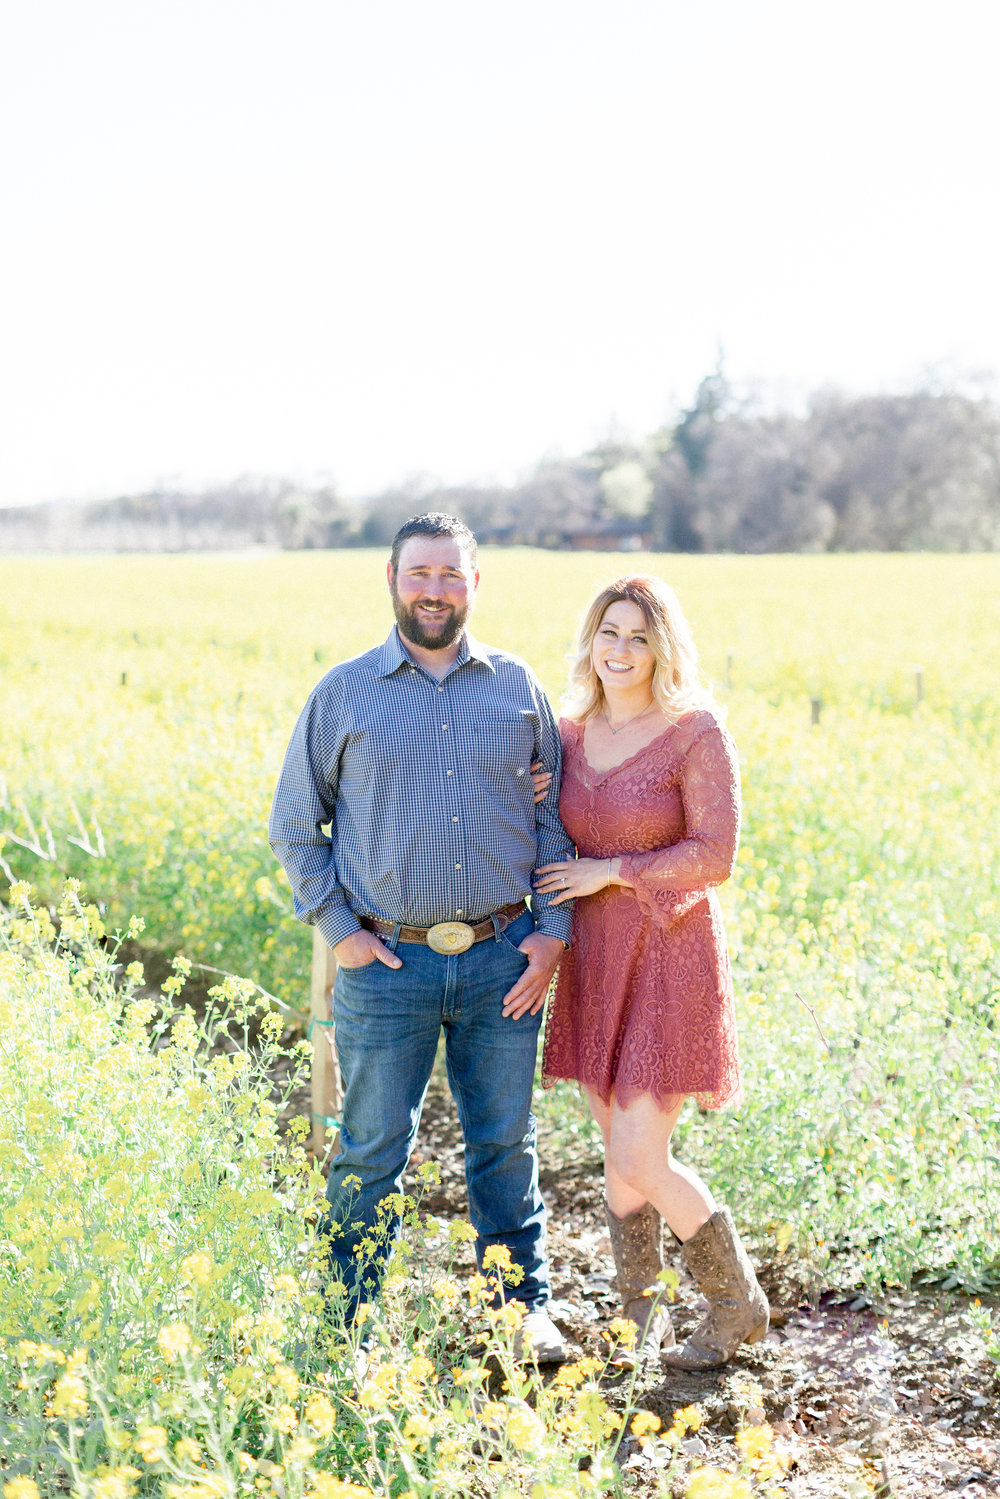 napa-valley-engagement-photos-in-field-of-flowersjpg